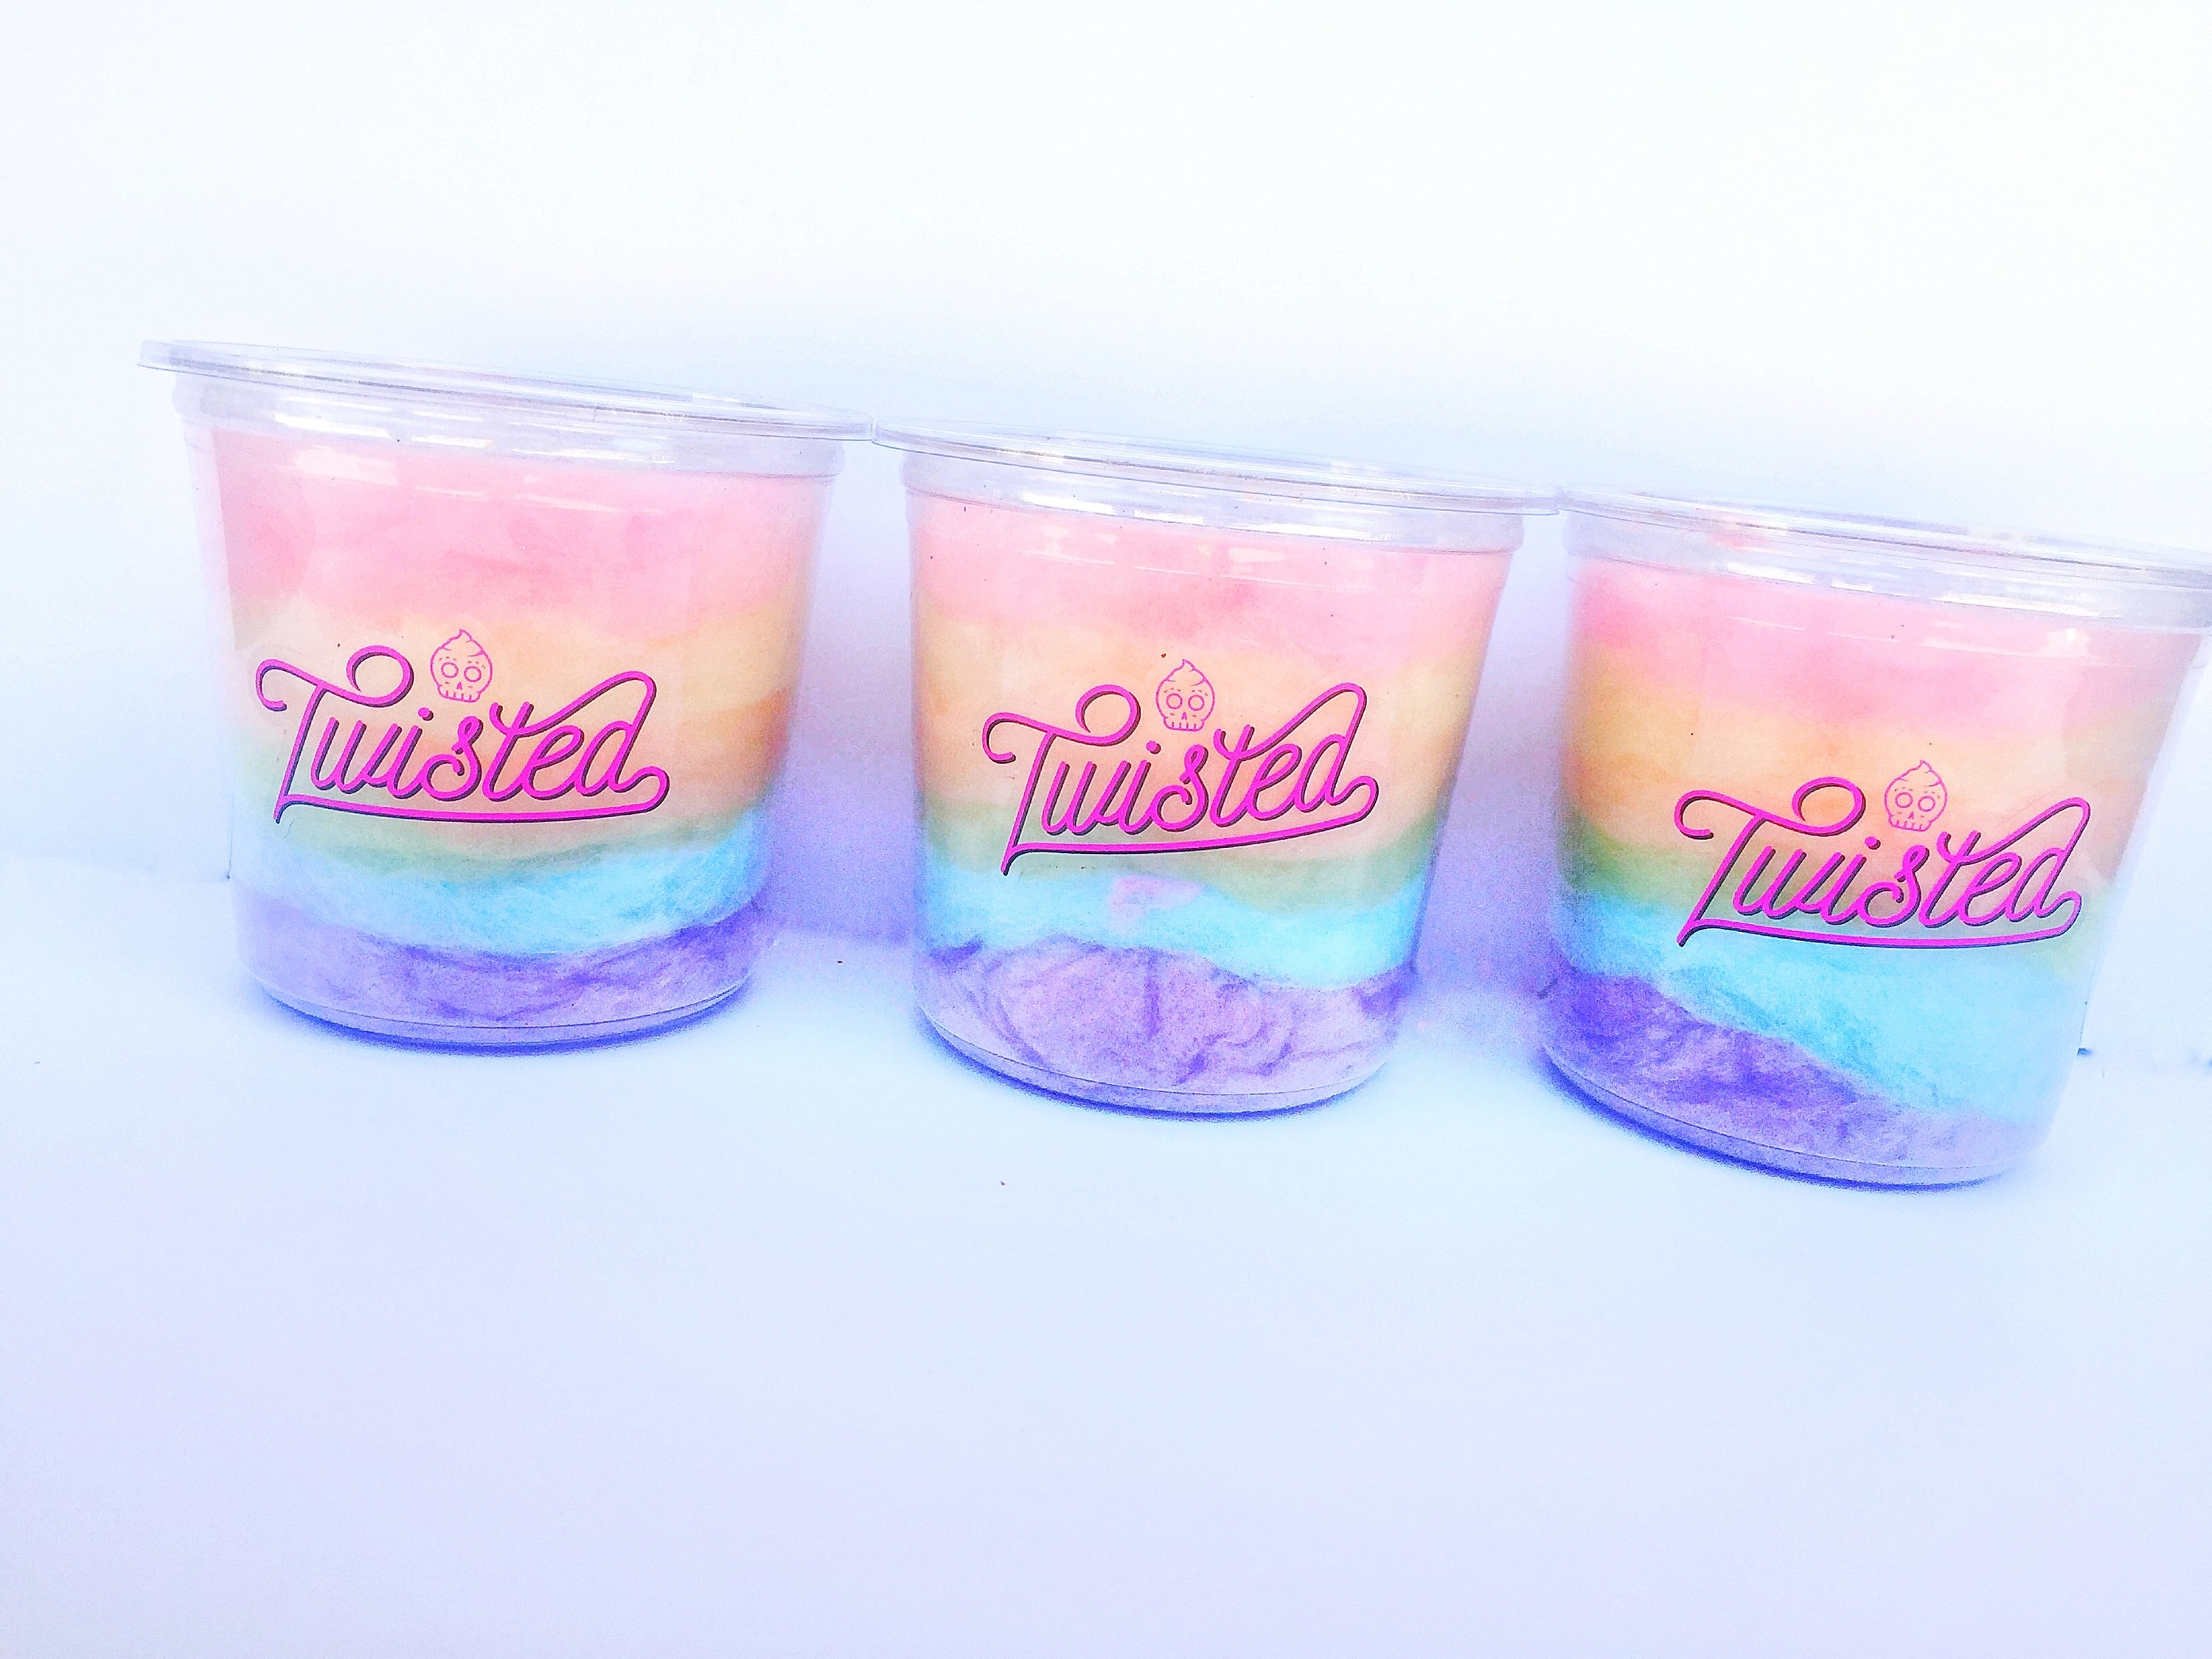 A picture of three tubs of rainbow cotton candy.